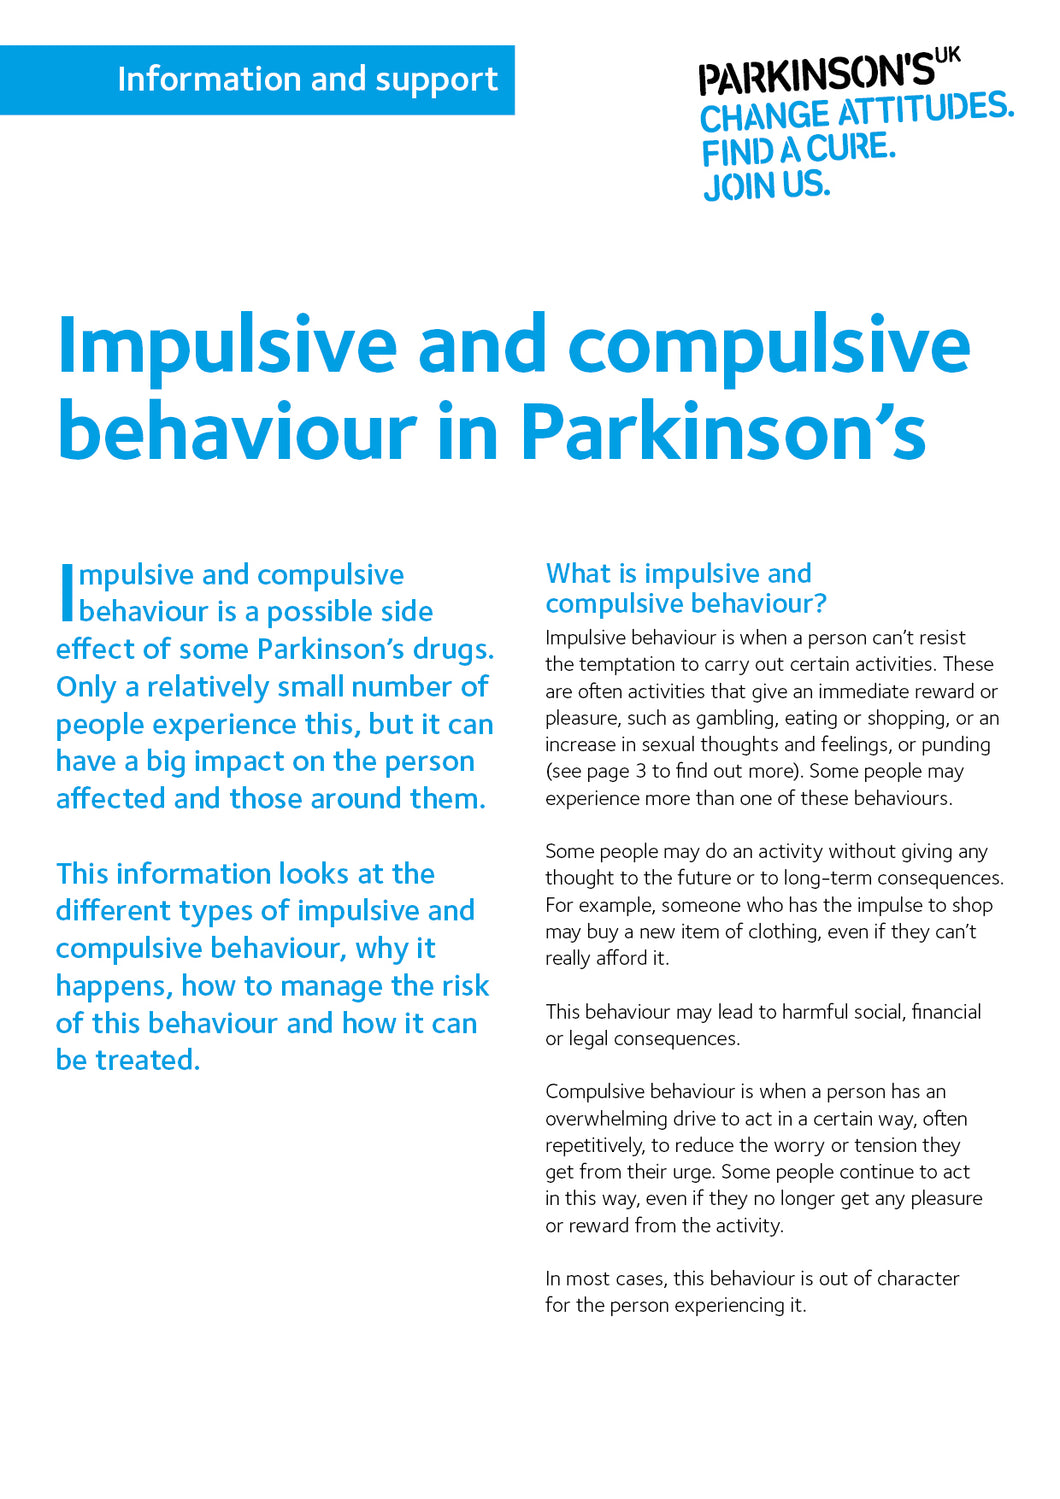 Impulsive and compulsive behaviour in Parkinson's - Parkinson's shop